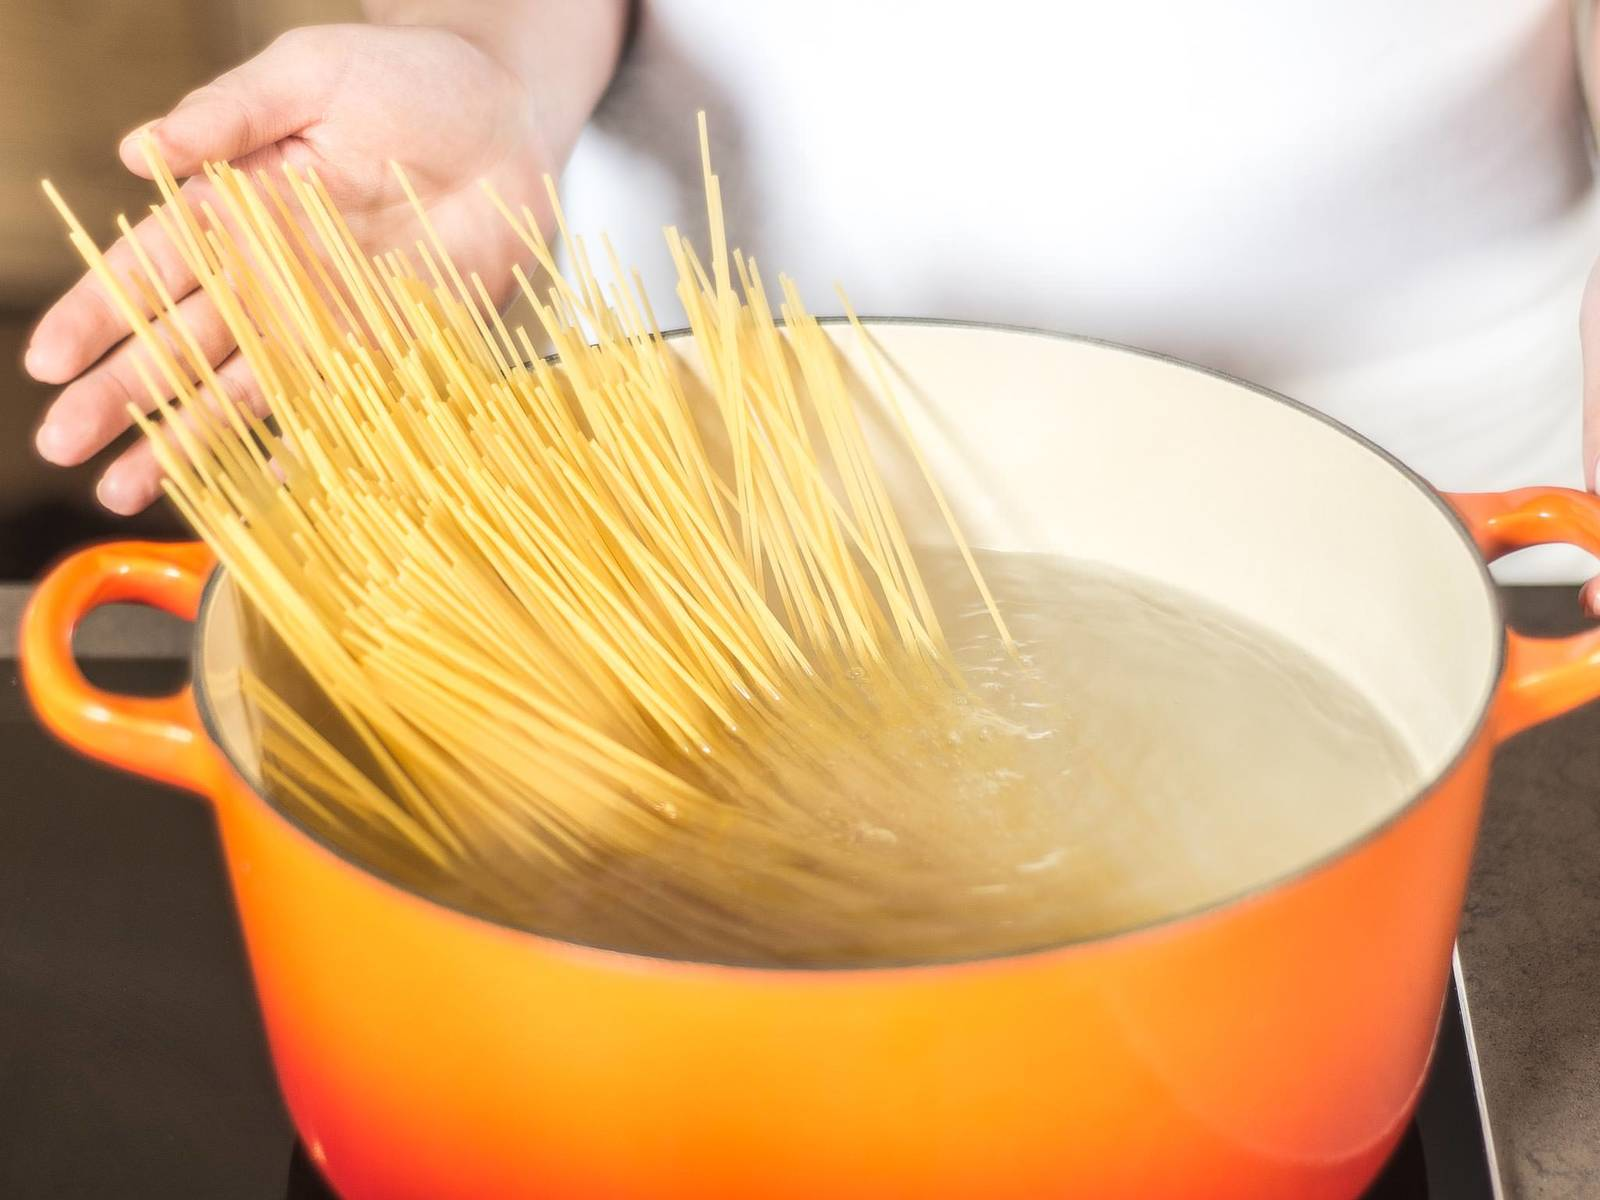 Cook spaghetti in salted, boiling water according to package instructions, until al dente. Drain and set aside.